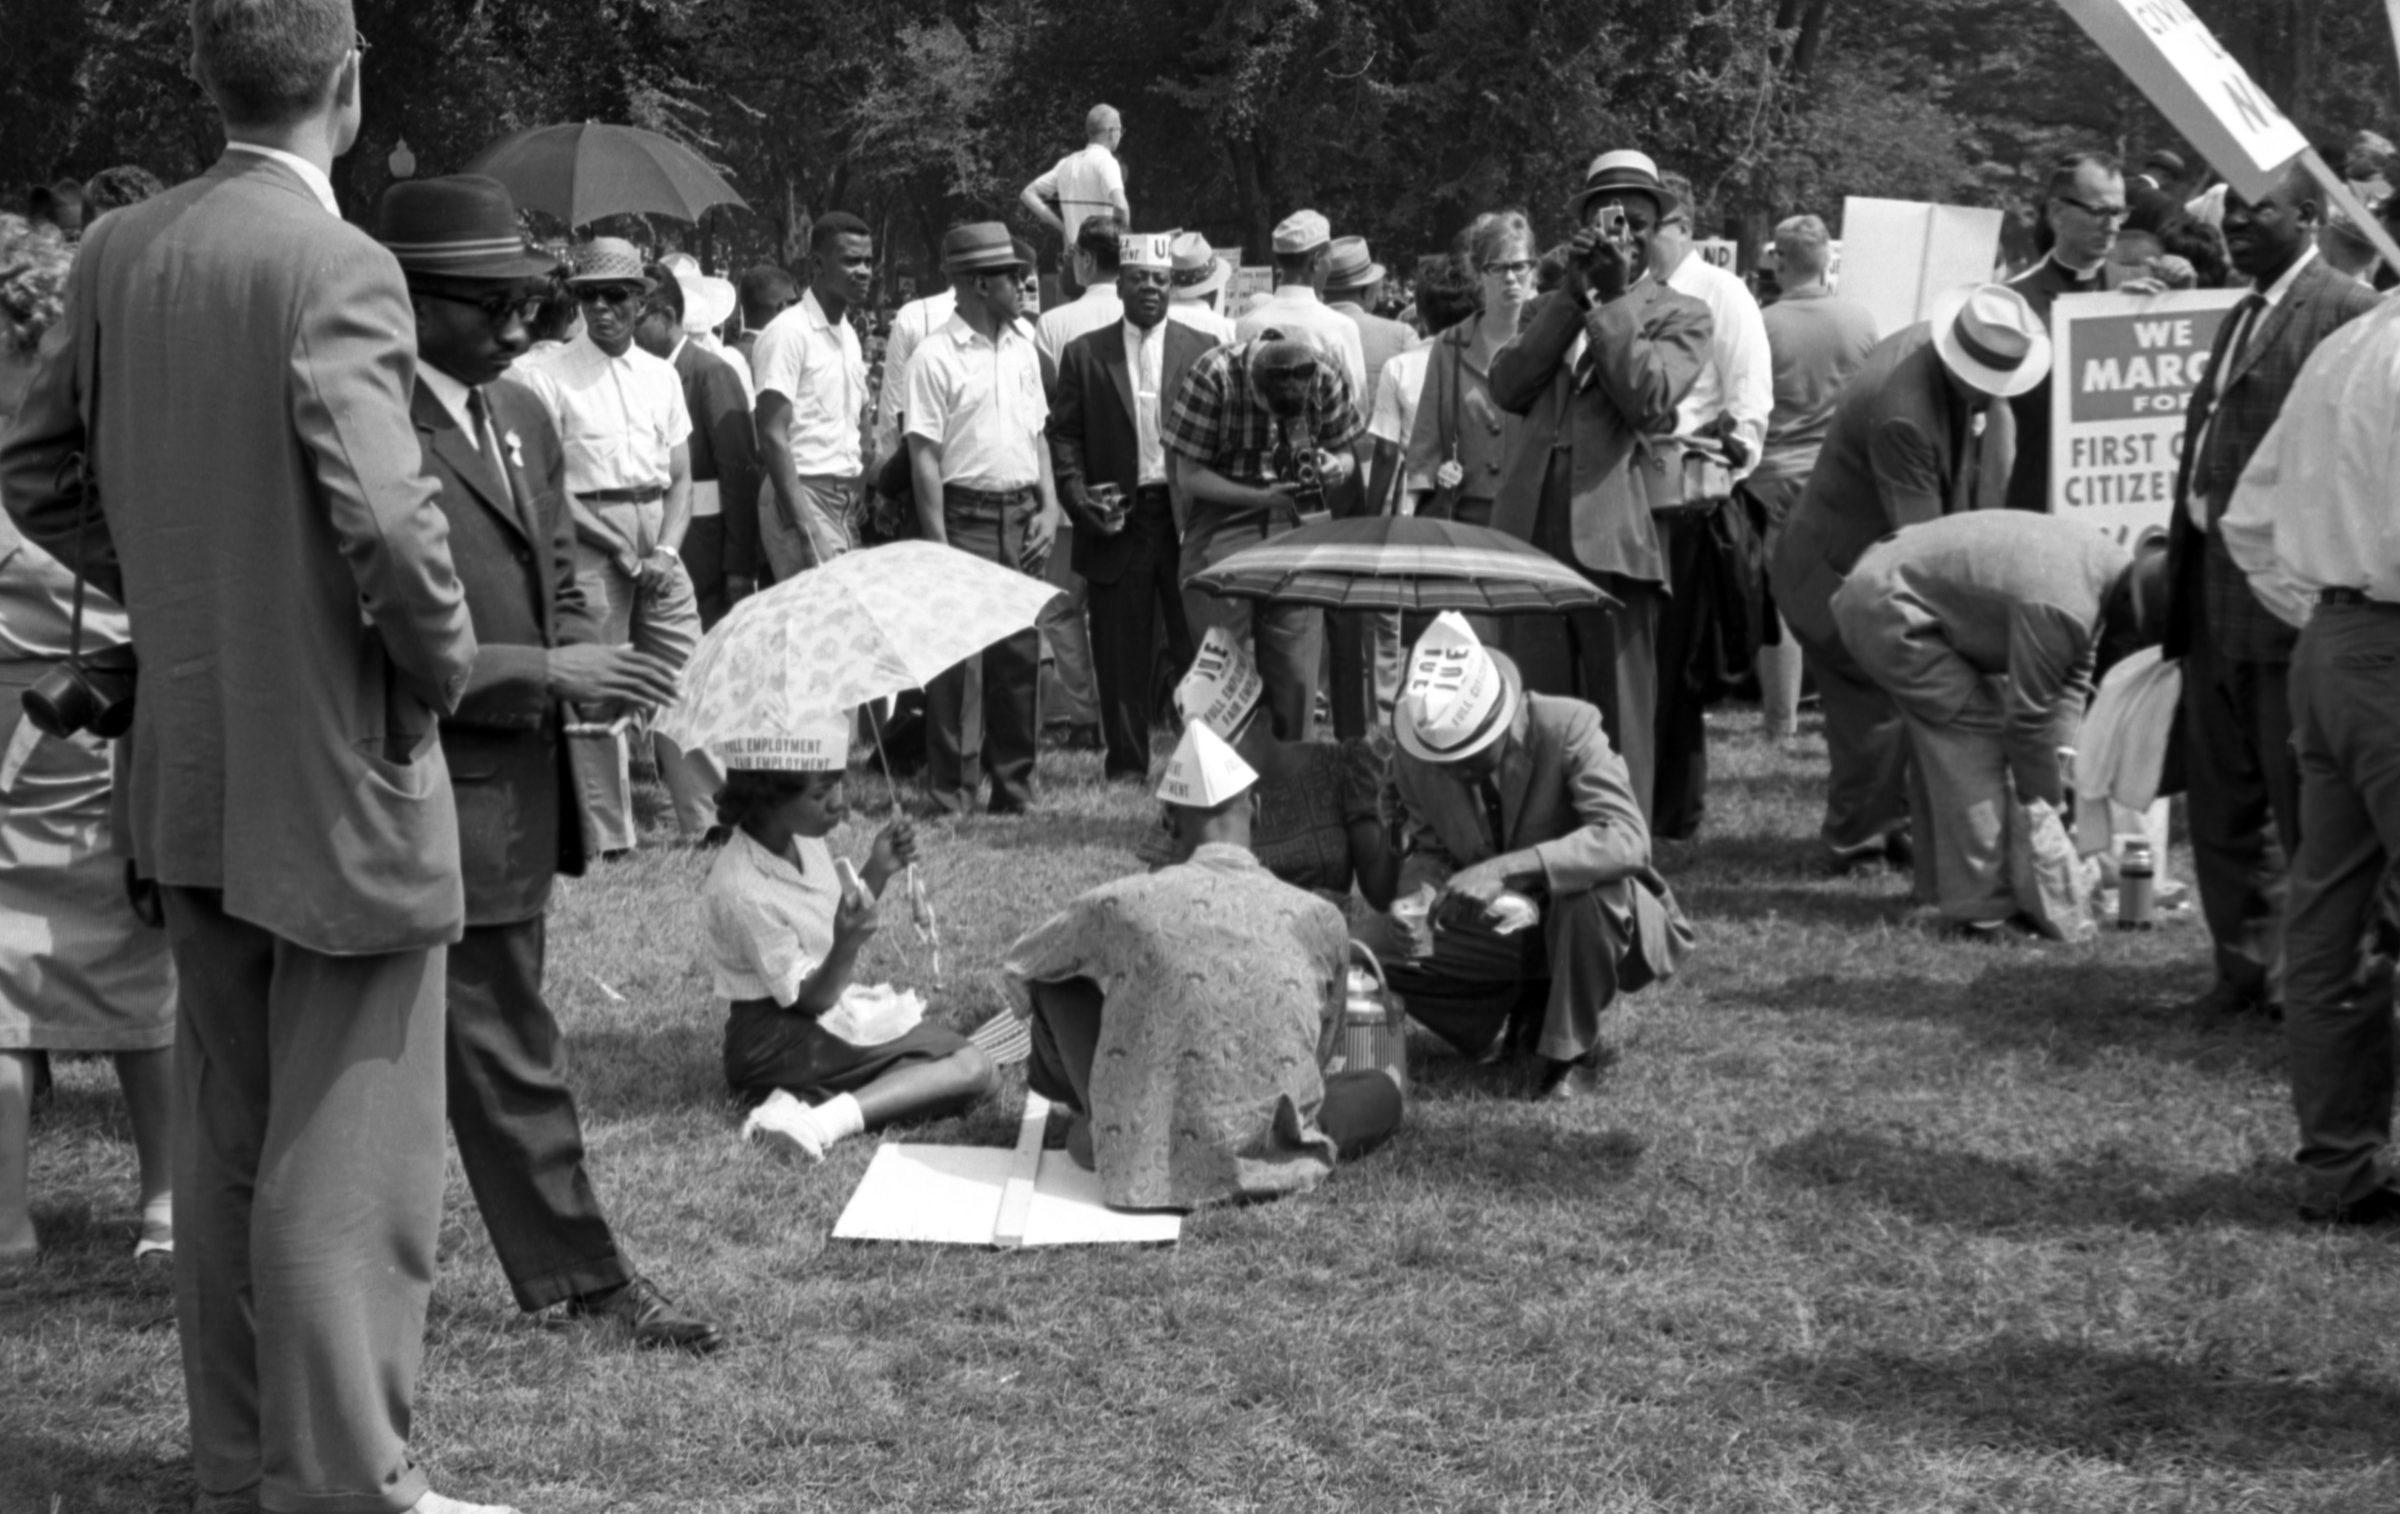 Attendees stopping to eat at the March on Washington, Courtesy of the Library of Congress